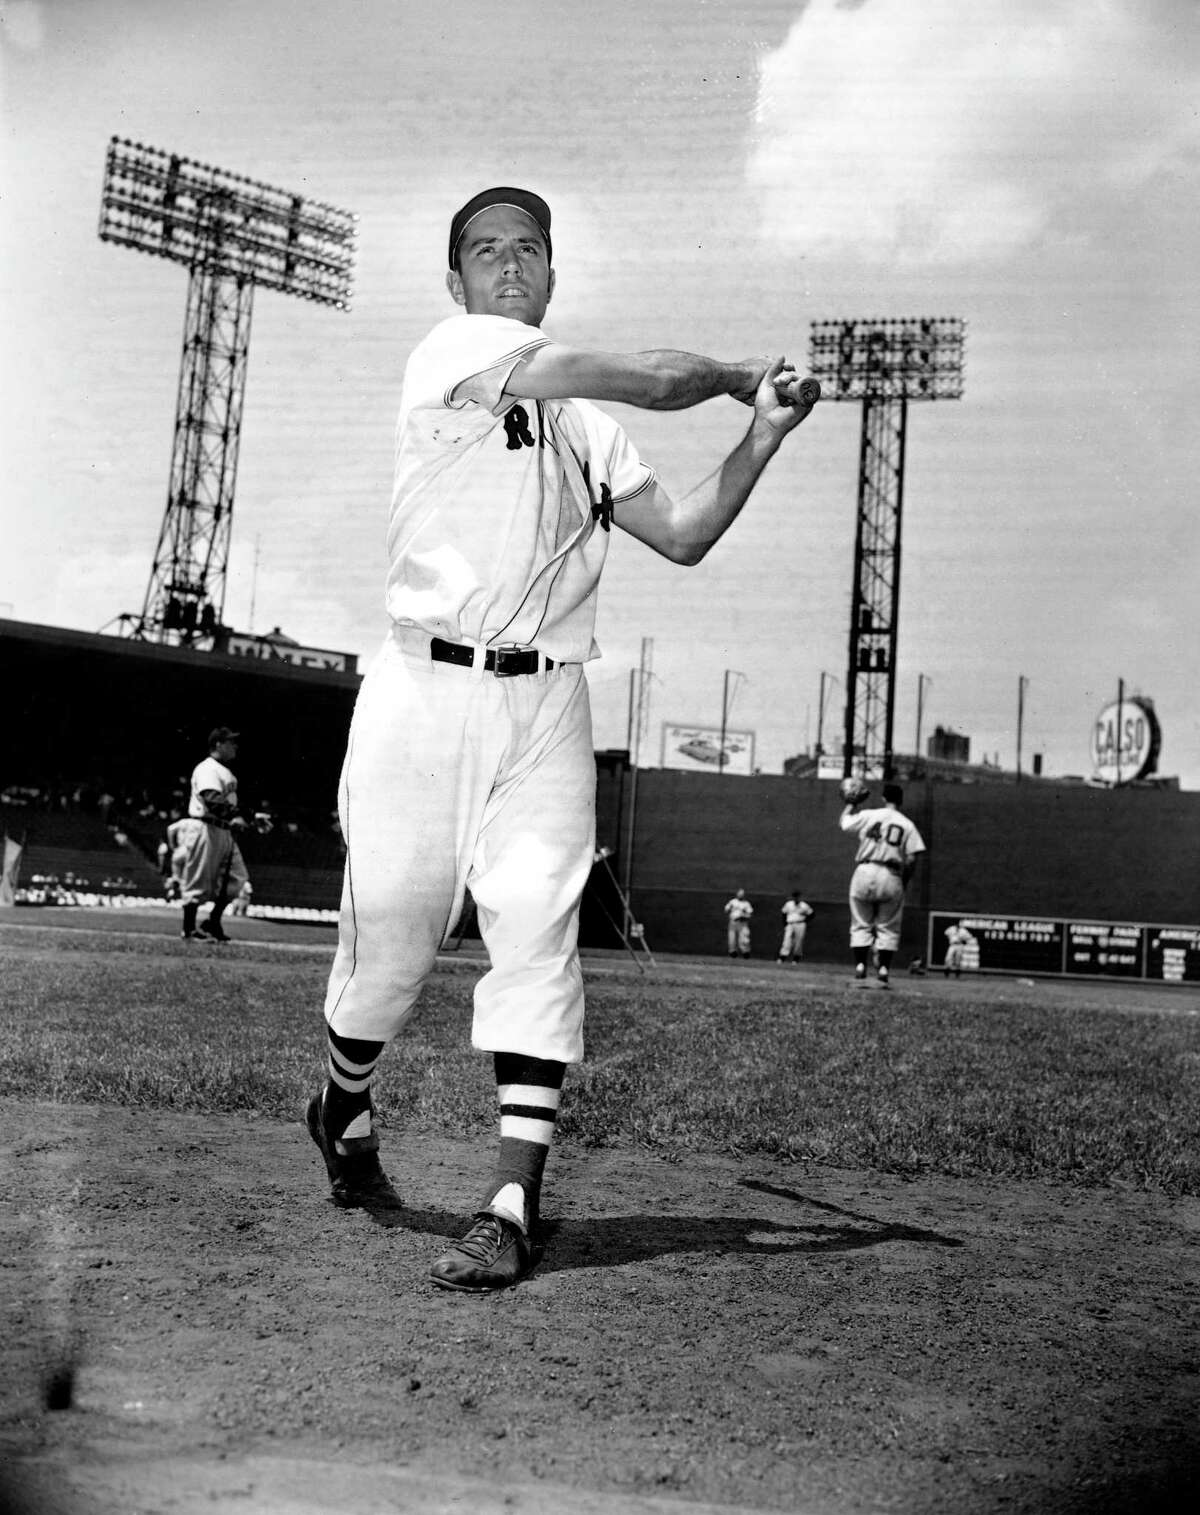 In this June 4, 1952 photo, Jim Piersall of the Boston Red Sox poses at Fenway Park in Boston, Ma., before a game against the Cleveland Indians. Piersall, who bared his soul about his struggles with mental illness in his book 'Fear Strikes Out,' has died. The Boston Red Sox, for whom Piersall played for seven of his 17 seasons in the majors, said Piersall died Saturday, June 3, 2017 at a care facility in Wheaton, Ill. after a monthslong illness.